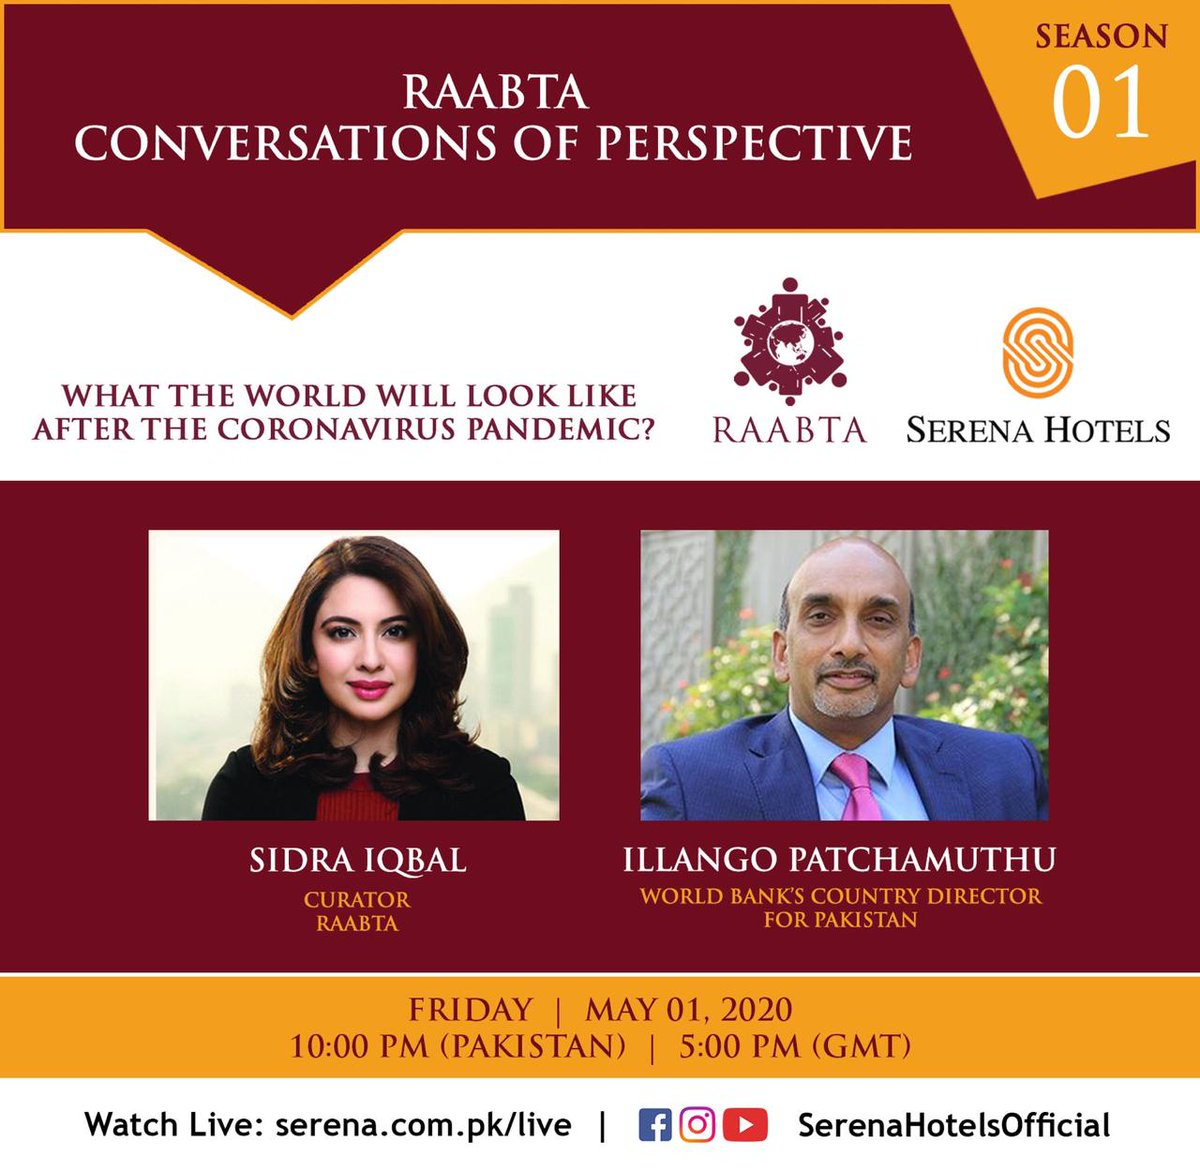 Sidra Iqbal, Curator Raabta talks to Illango Patchamuthu - World Bank's Country Director for Pakistan.  Watch Live on Friday, 01 May at 10:00 pm (Pakistan Time)   5:00 pm (GMT) on https://t.co/CKL9uloMfi or Facebook/YouTube/Instagram @SerenaHotelsOfficial.   #StayHome #StaySafe https://t.co/t4IkNw61pv